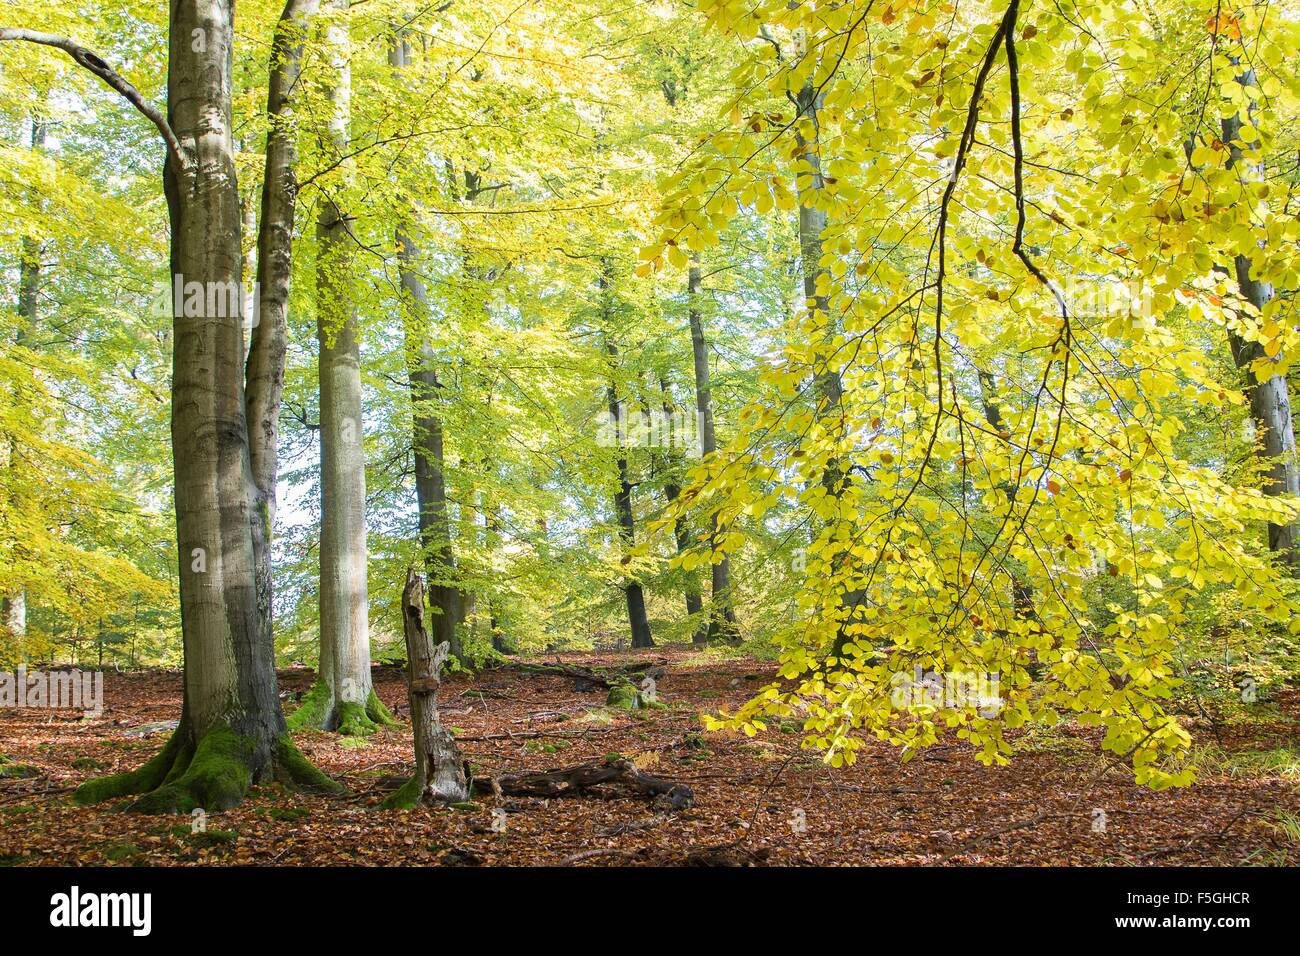 Autumn in beech (Fagus sp.) forest, Hesse, Germany Stock Photo